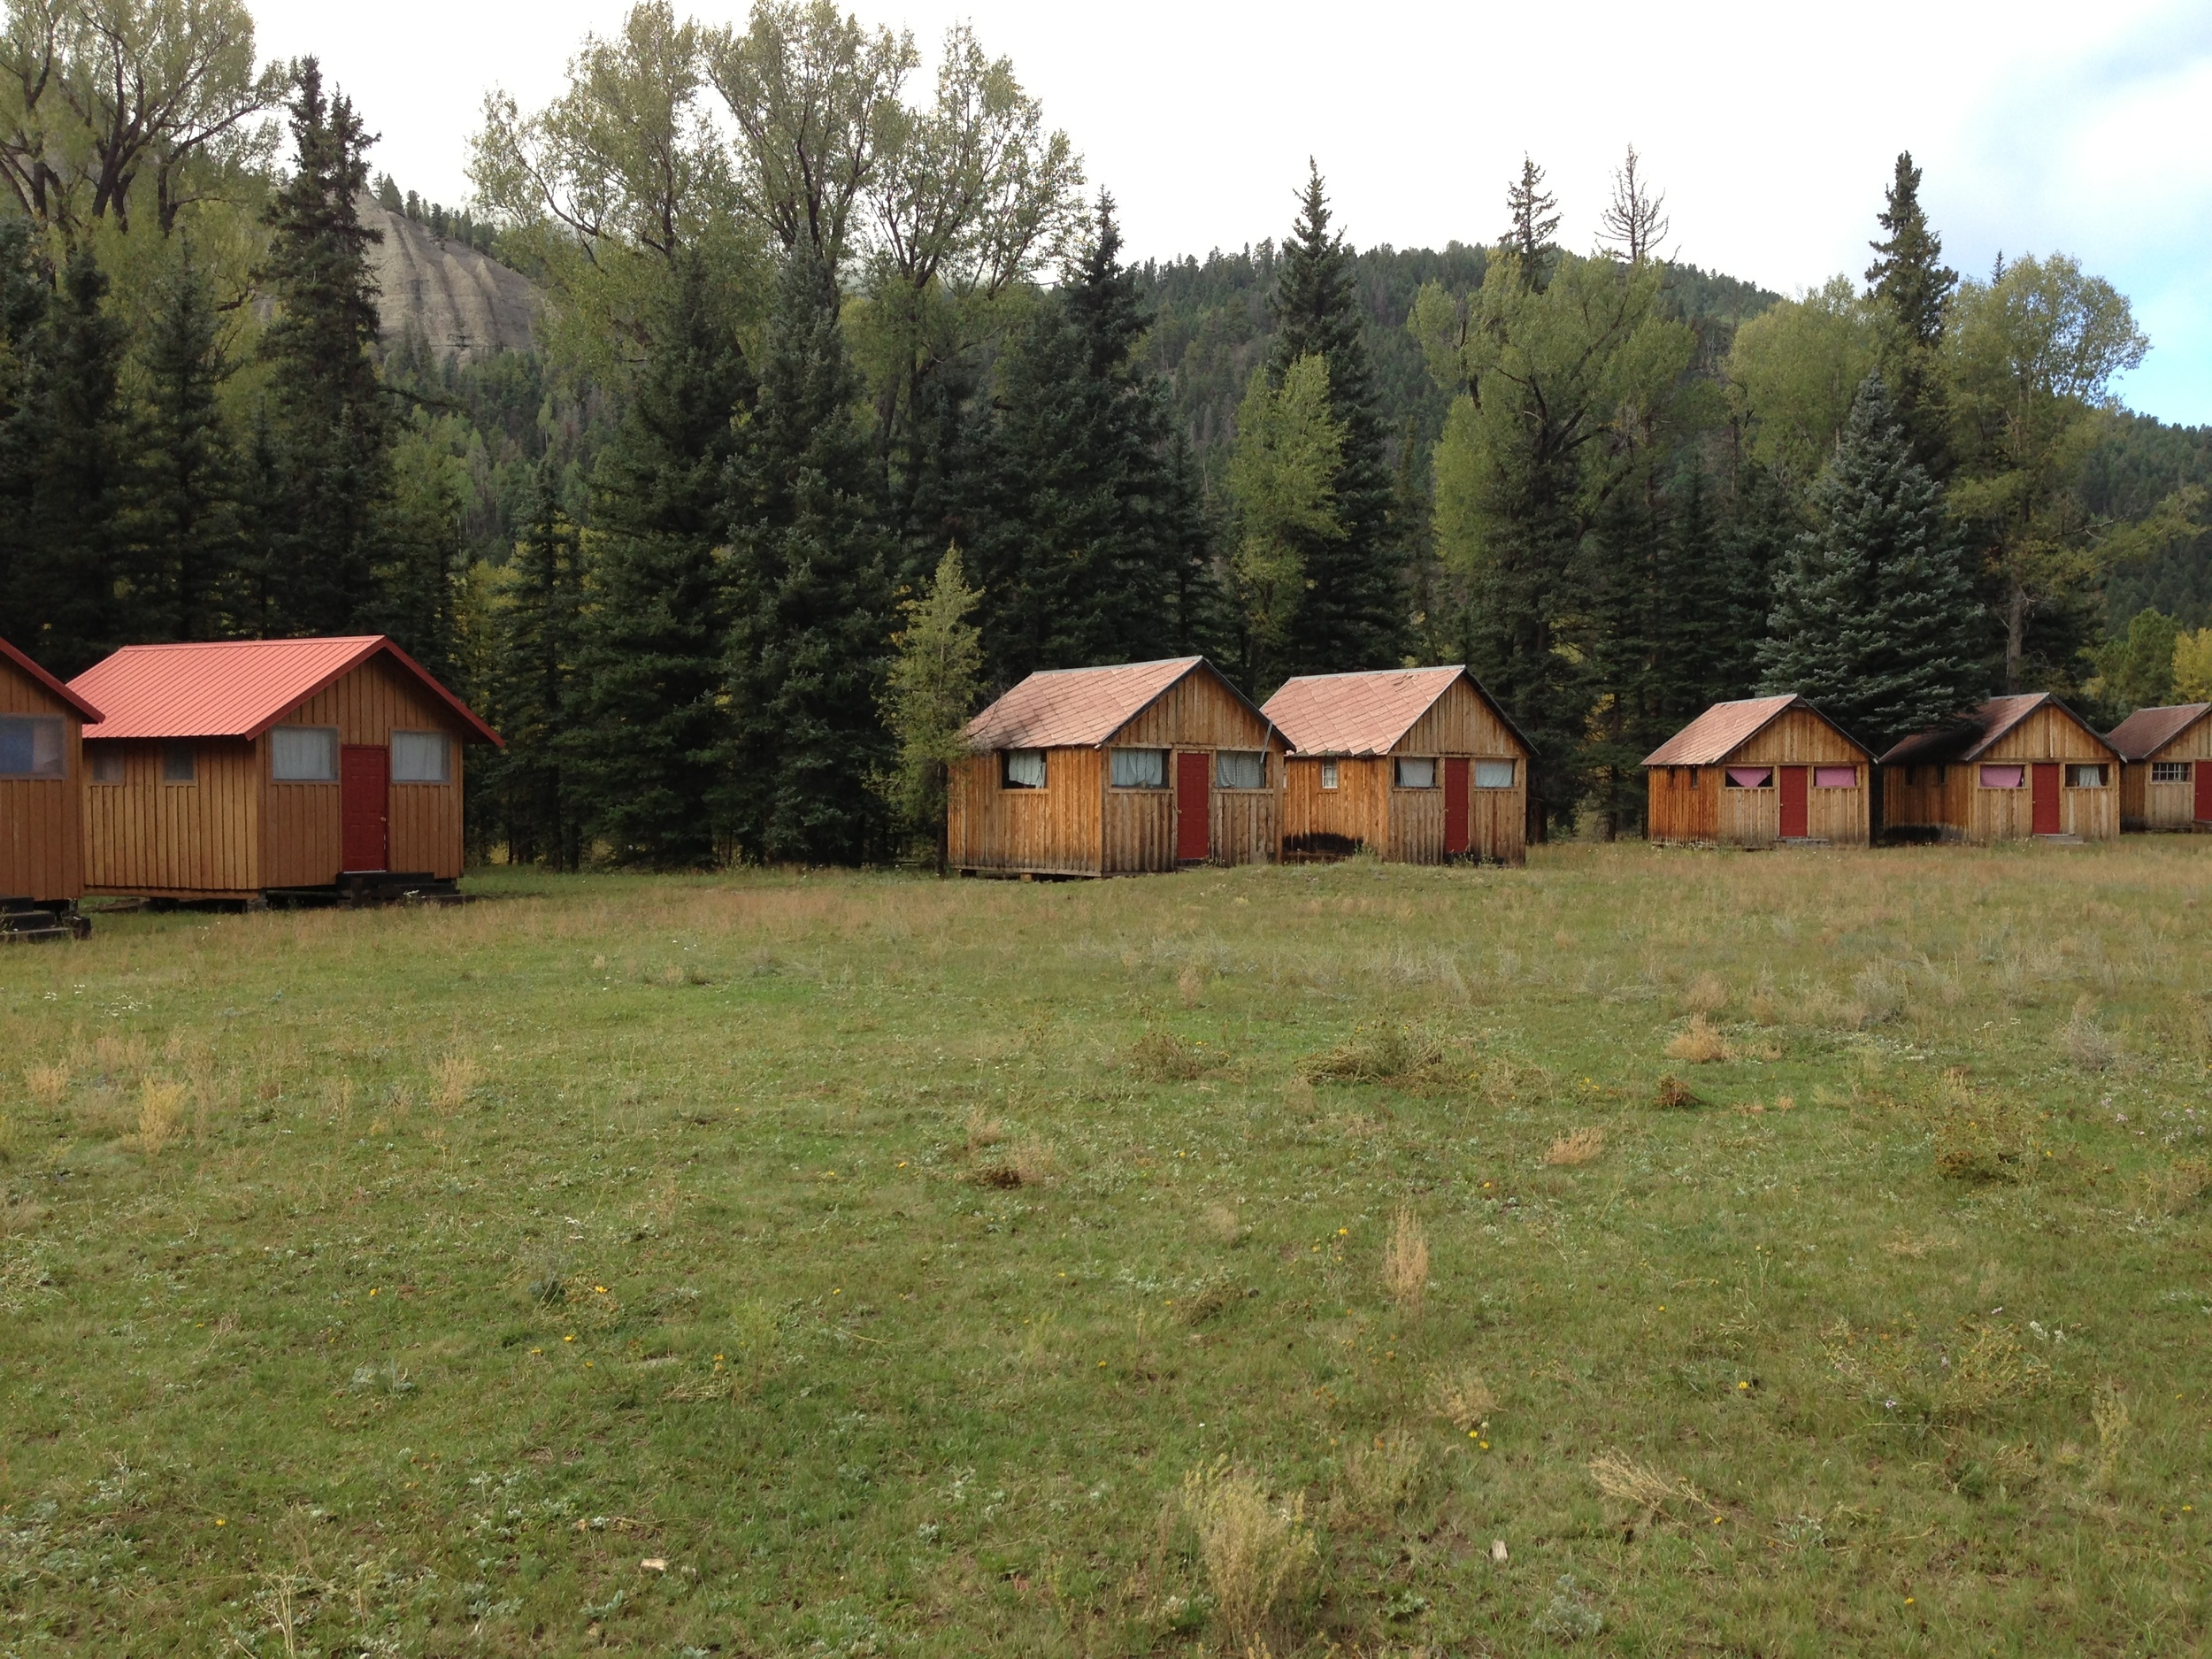 Cabins (1 on left remodeled, on right before remodeling)